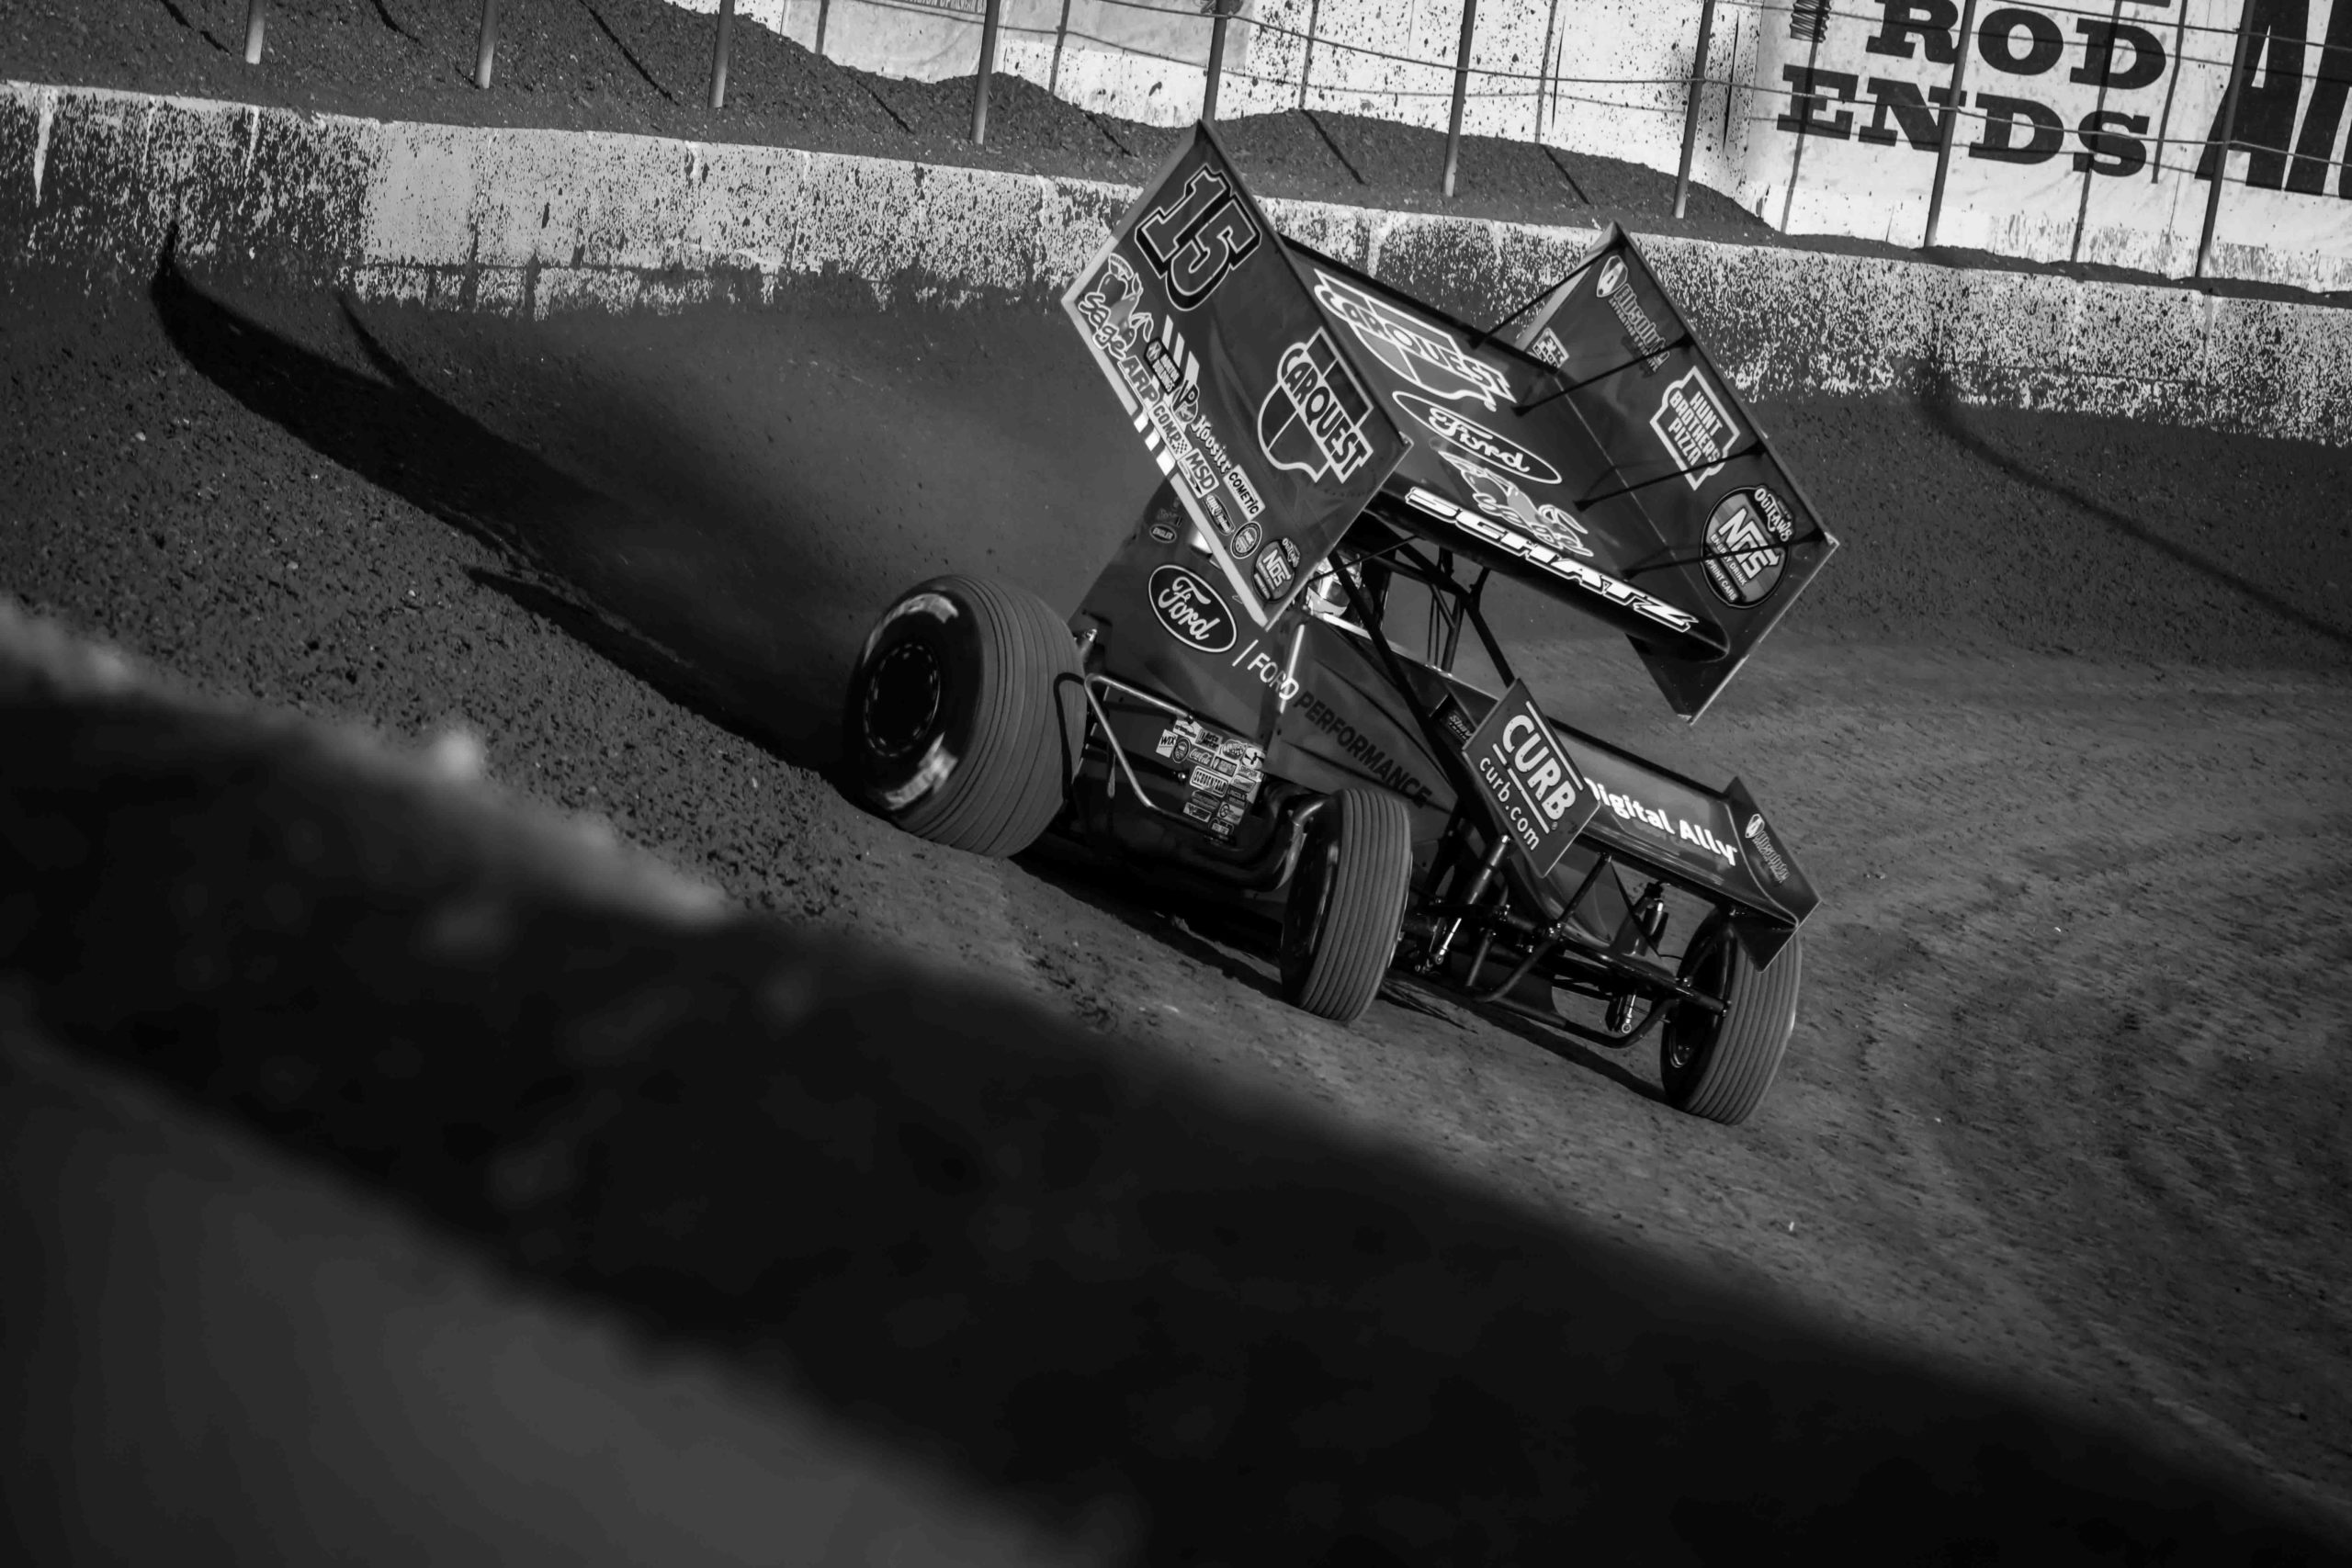 donny schatz, sprint cars, world of outlaws